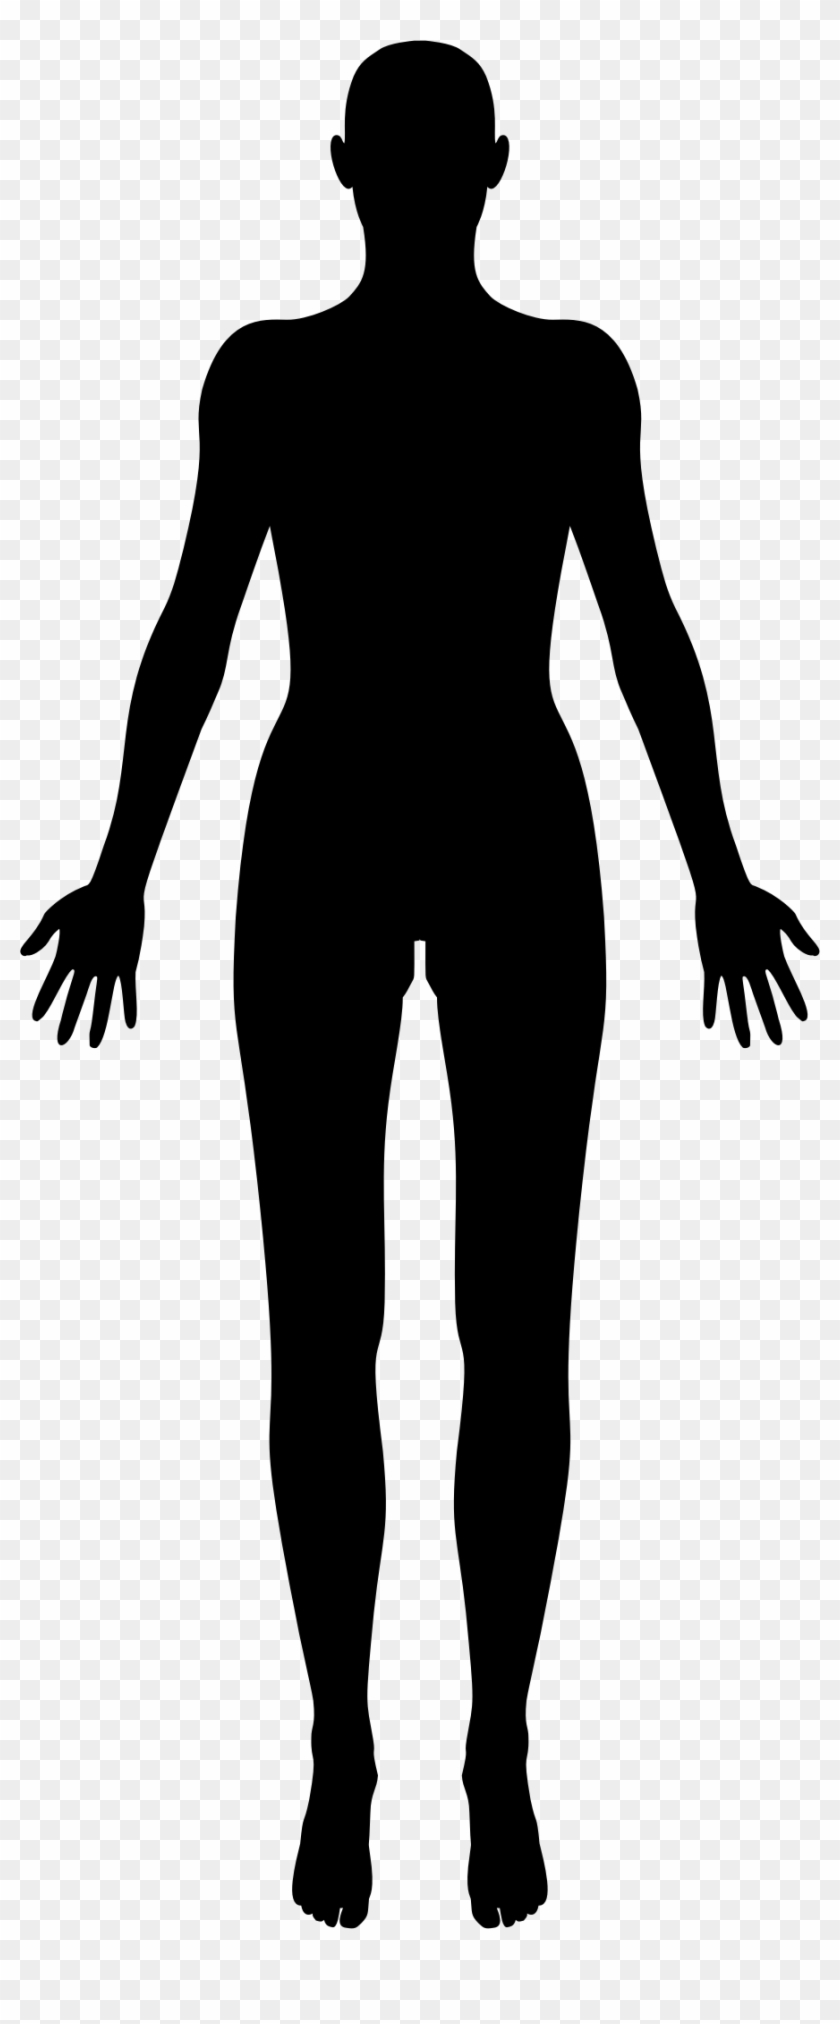 Pngs bodies clip freeuse library Female Body Silhouette Big Image Png Ⓒ - Human Body ... clip freeuse library